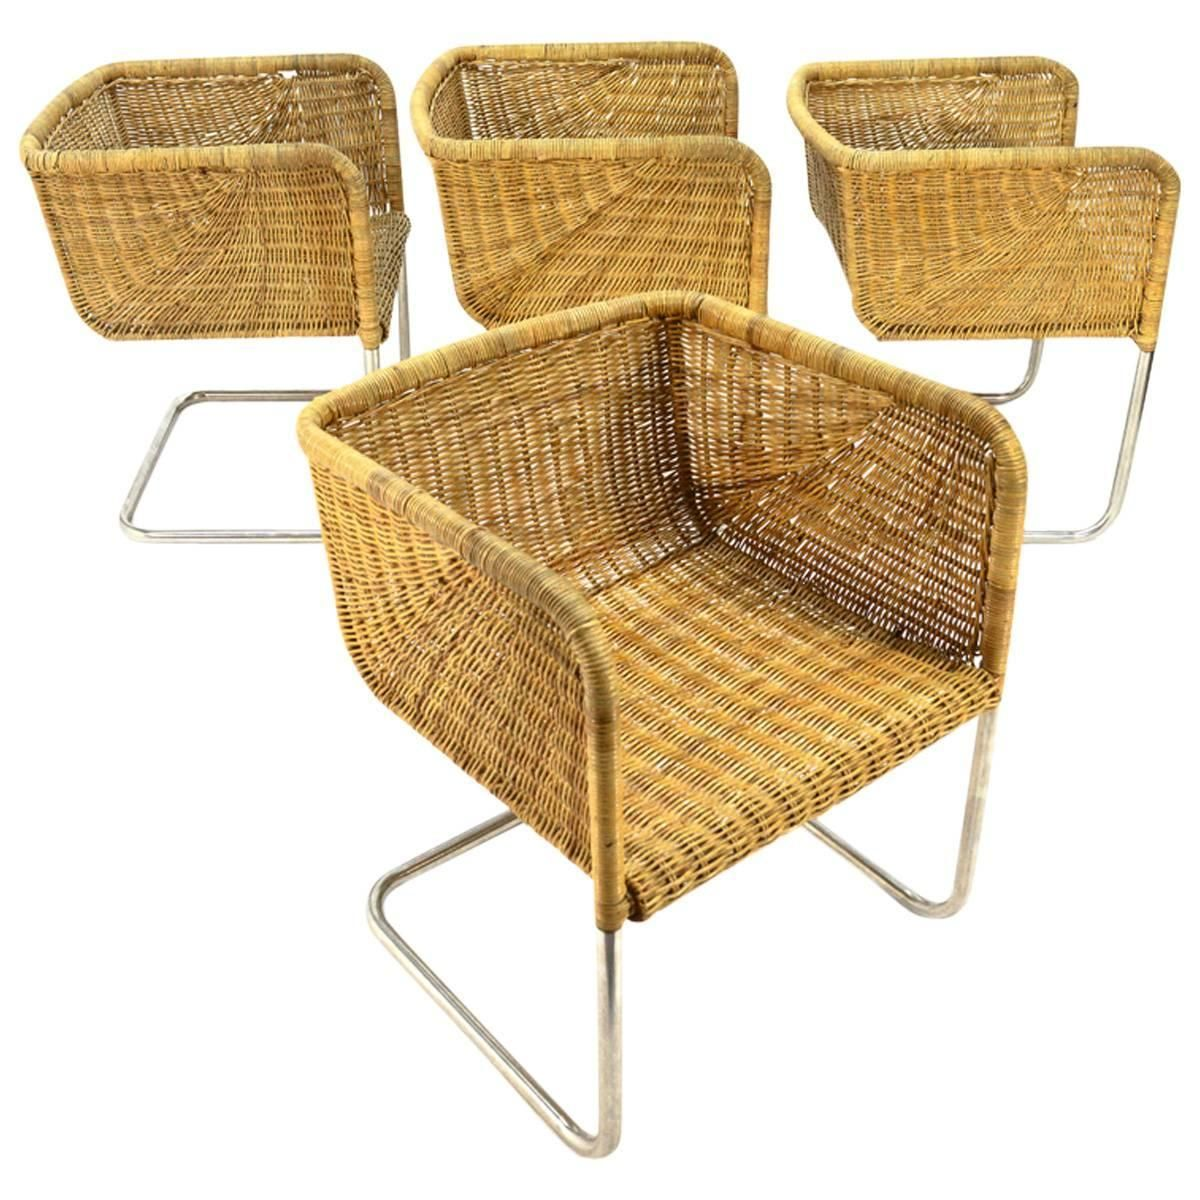 a1286dd9cb455 Set of Four Fabricius and Kastholm Chrome and Wicker Dining Chairs ...